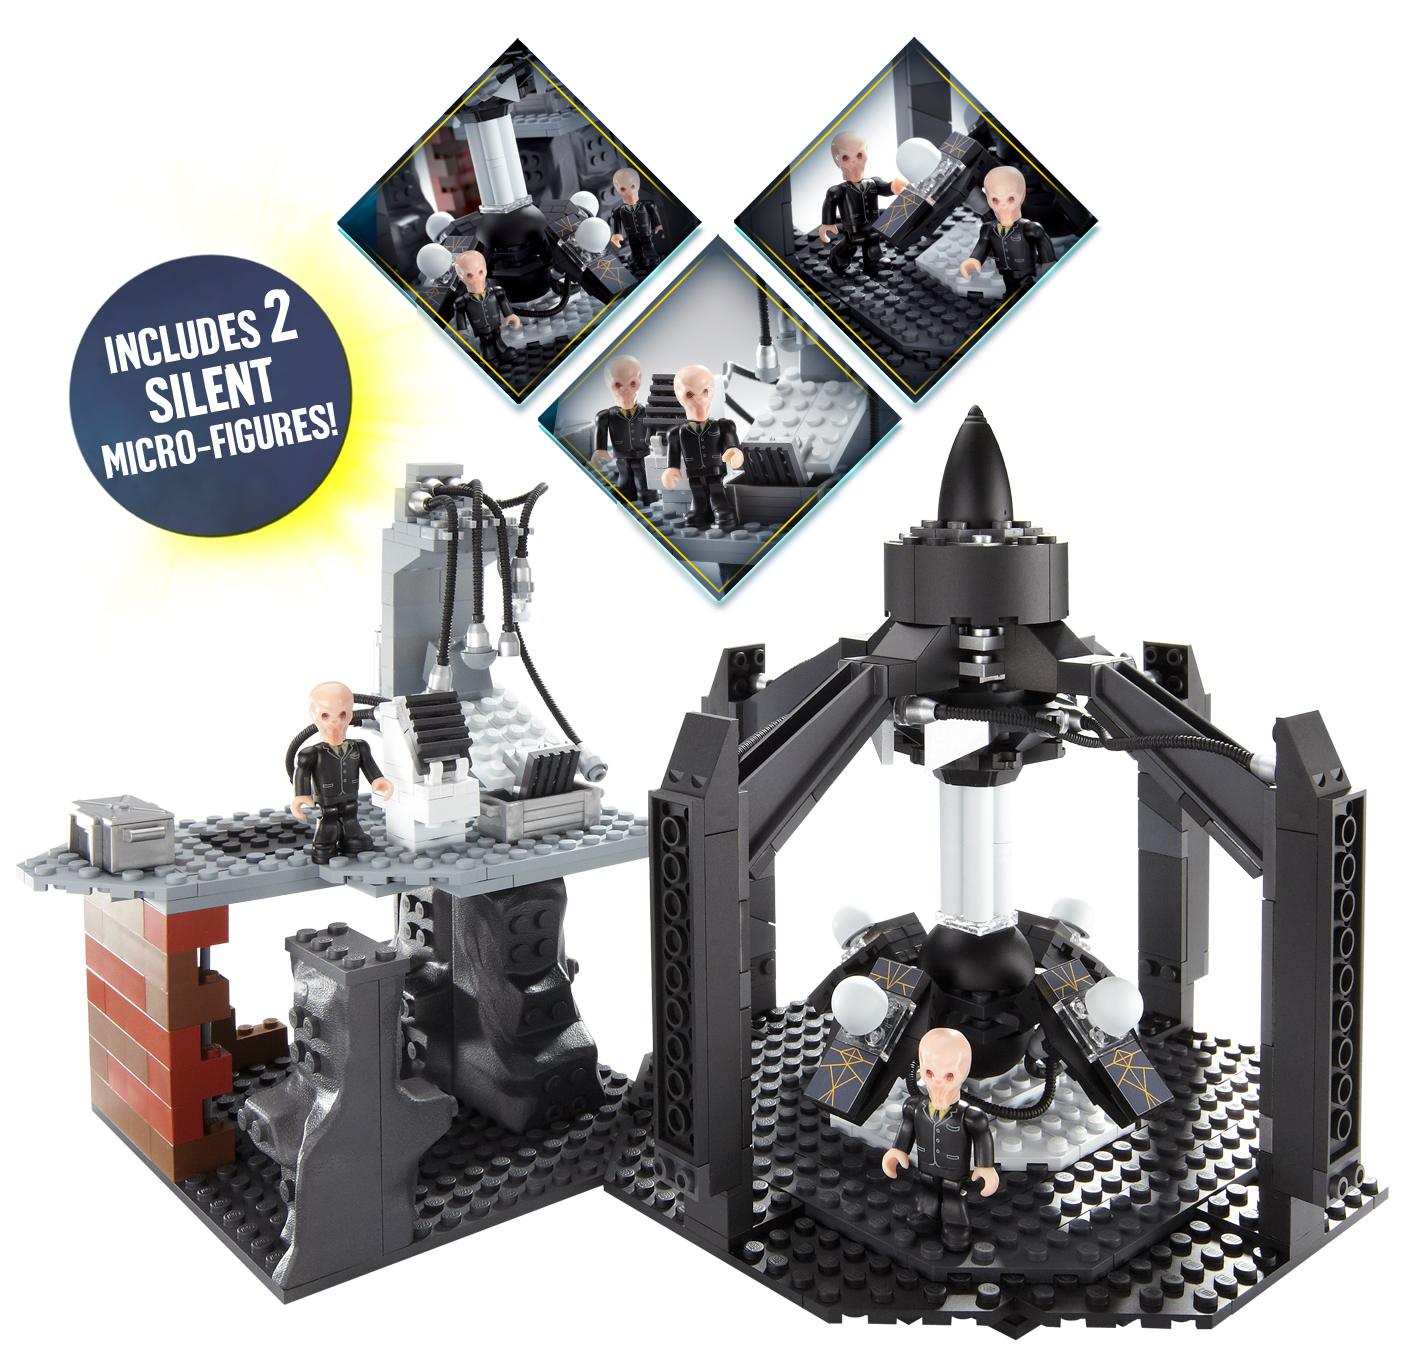 DOCTOR WHO CHAR BUILDING SILENT TIME MACHINE SET